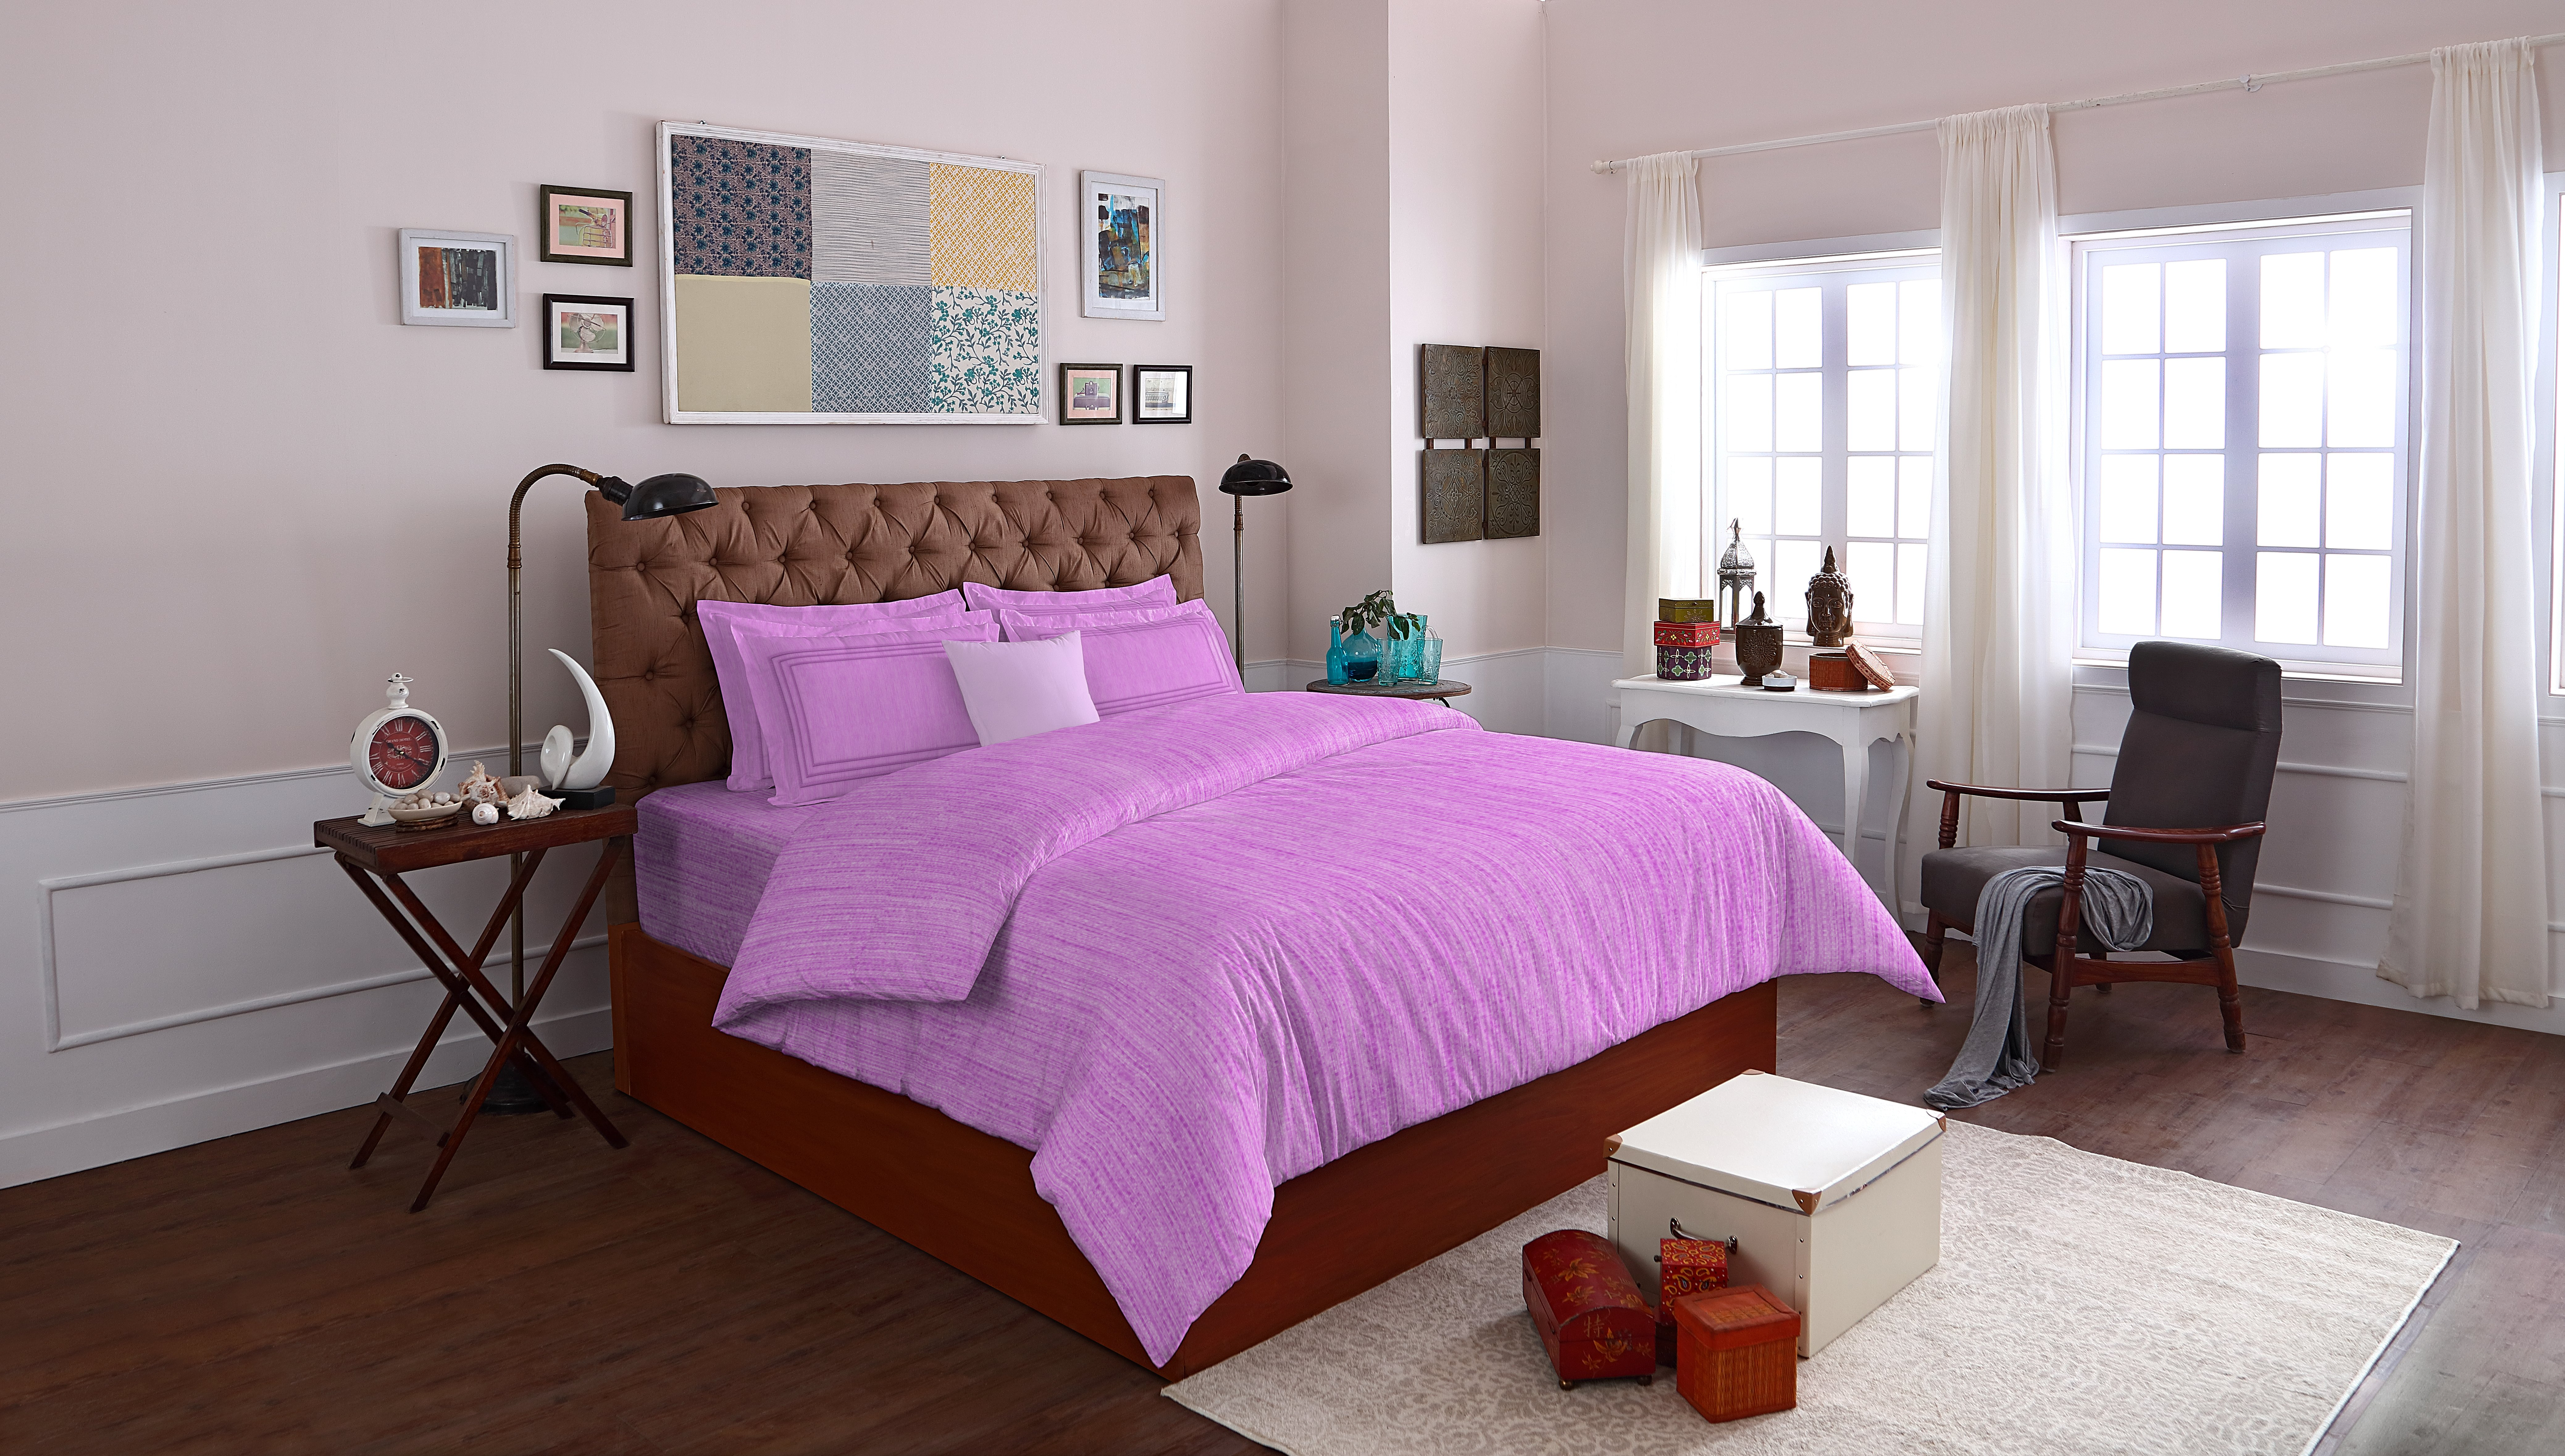 Spaces Essentials Cotton Double Bed Sheets in Light Pink Colour by Spaces